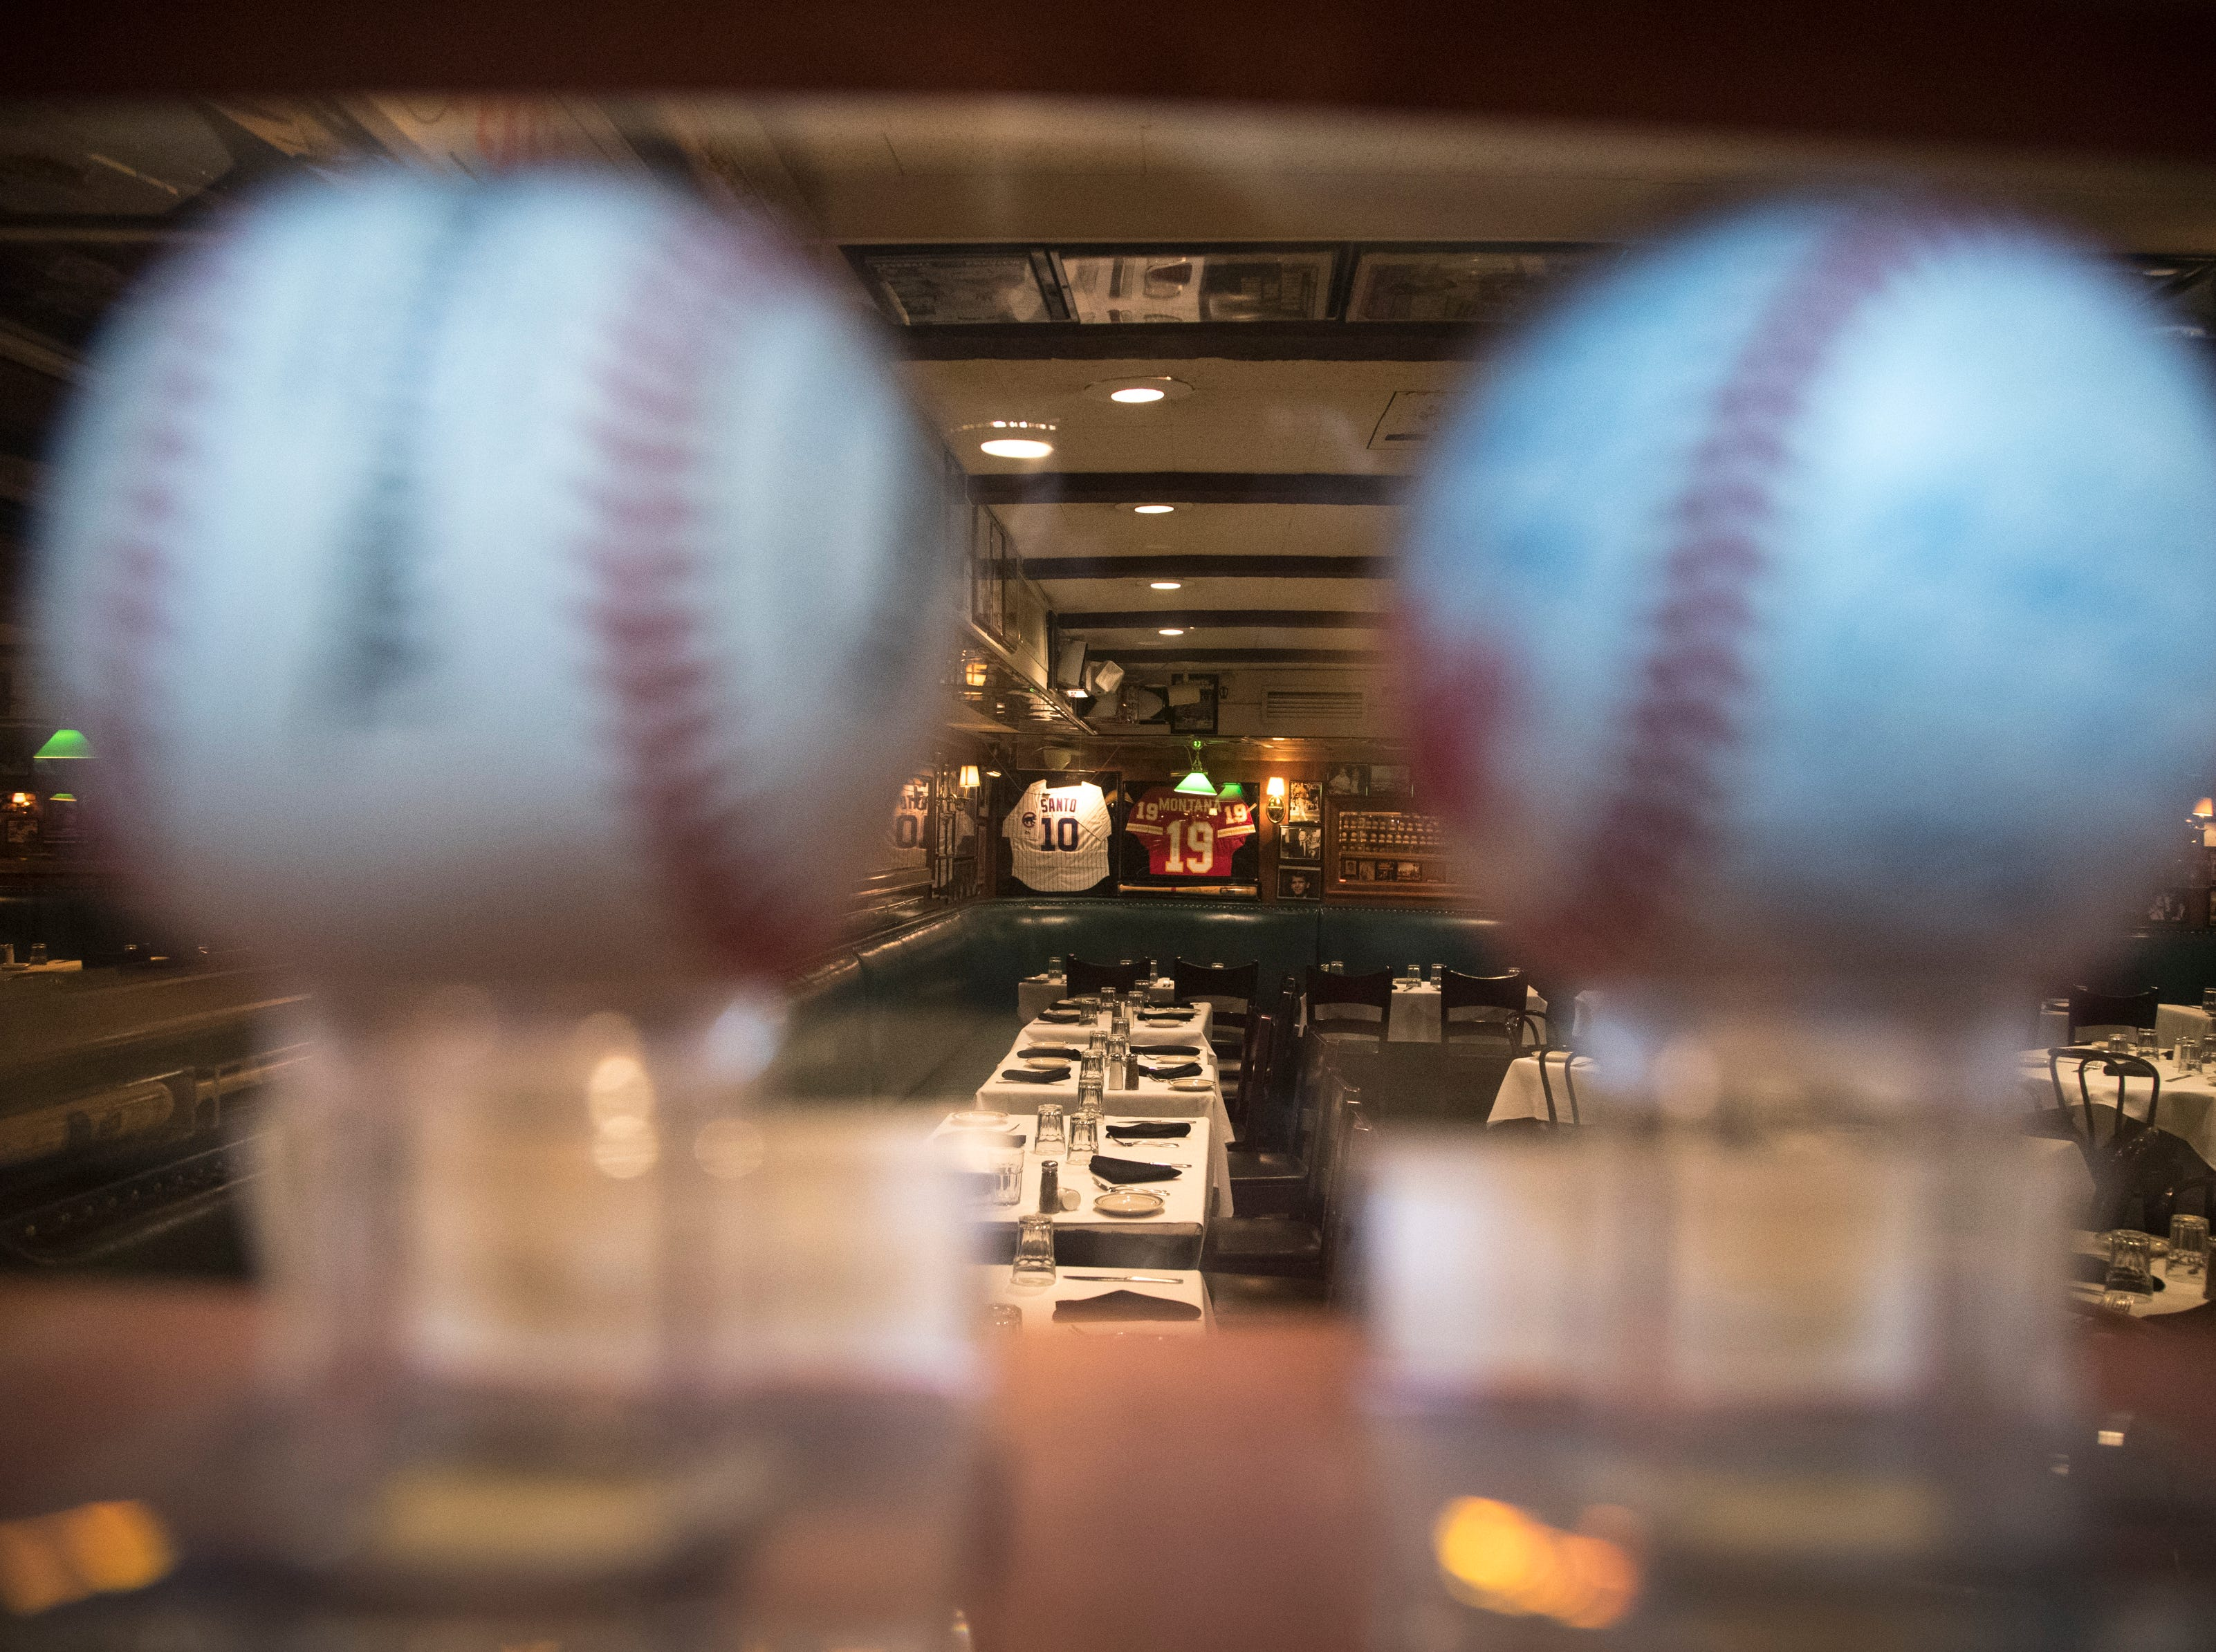 Baseballs and memorabilia are seen Feb. 27, 2019, at Don & Charlie's, 7501 E. Camelback Road, Scottsdale.